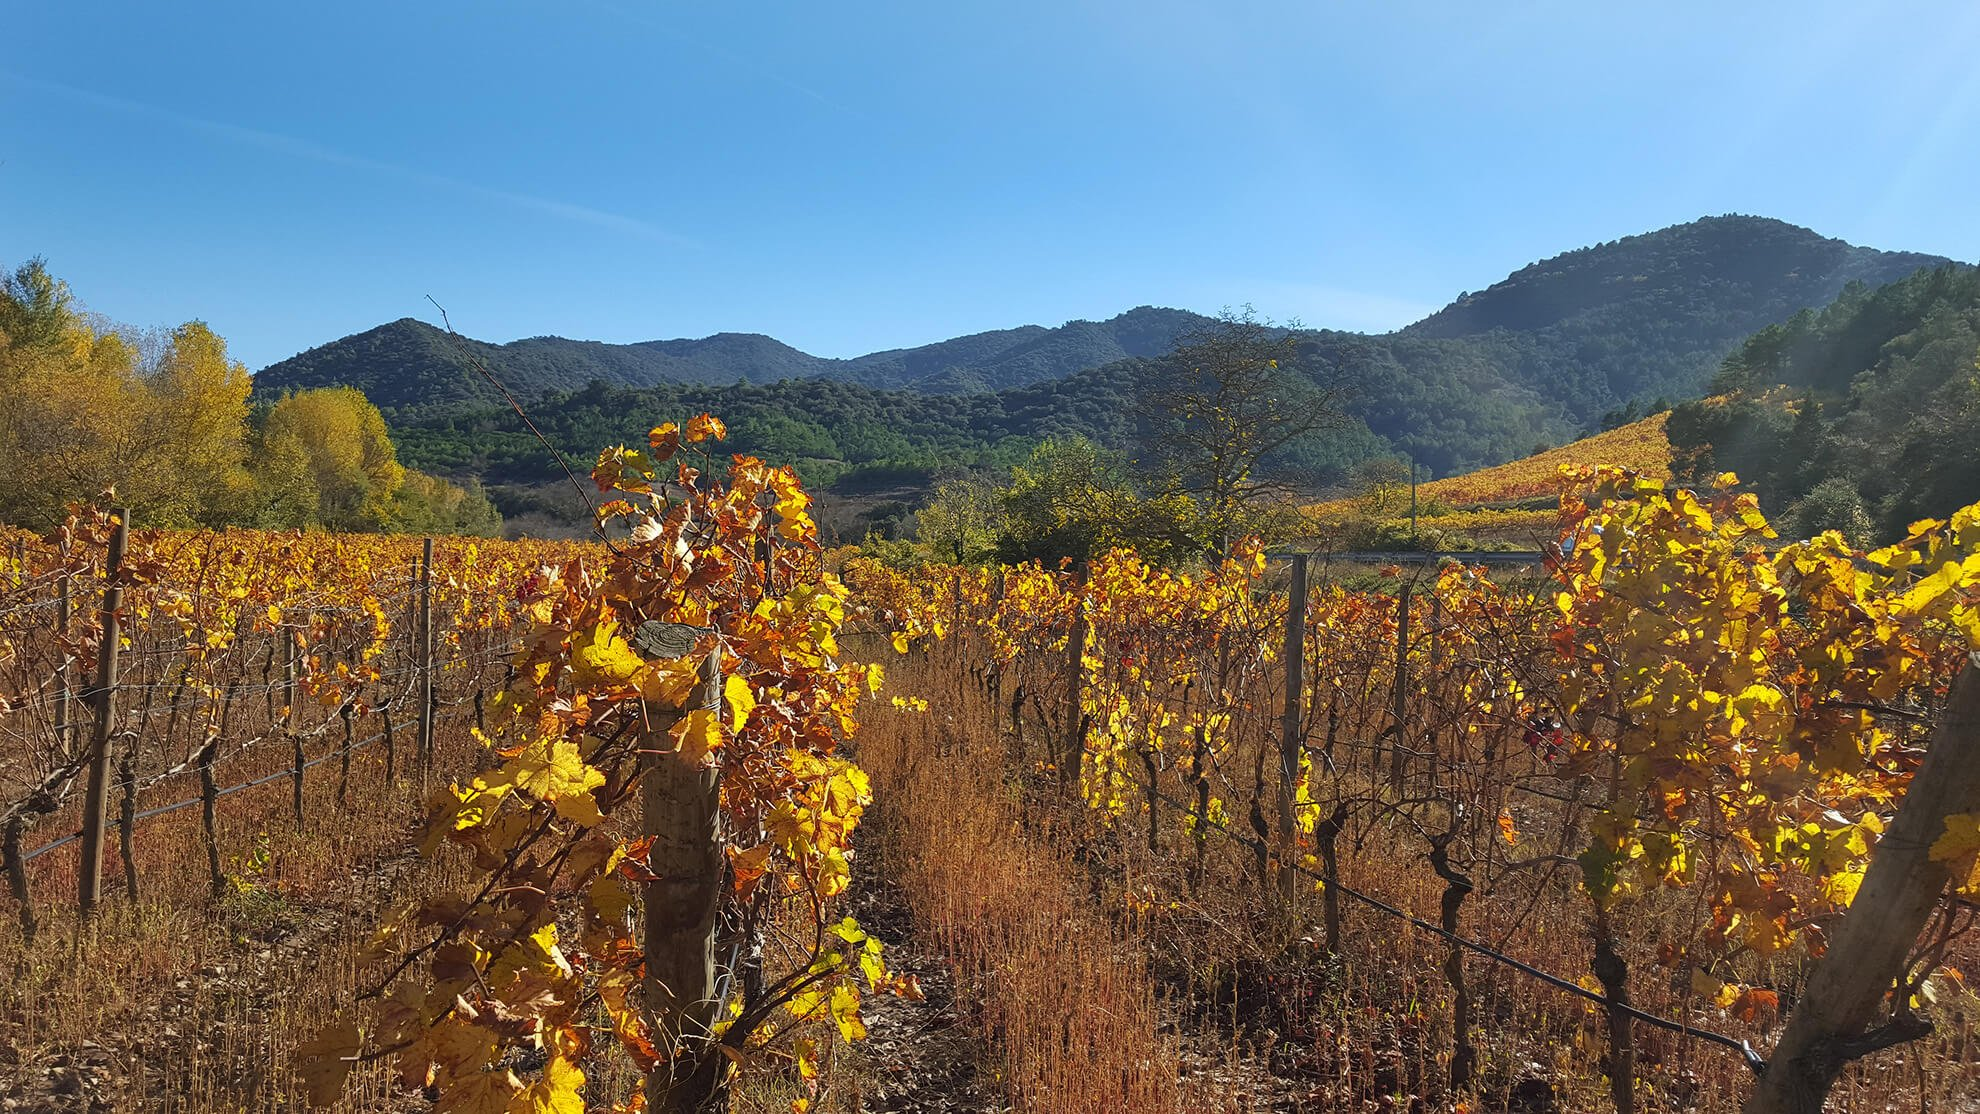 The Priorat vineyards landscape Montsant Terra Alta